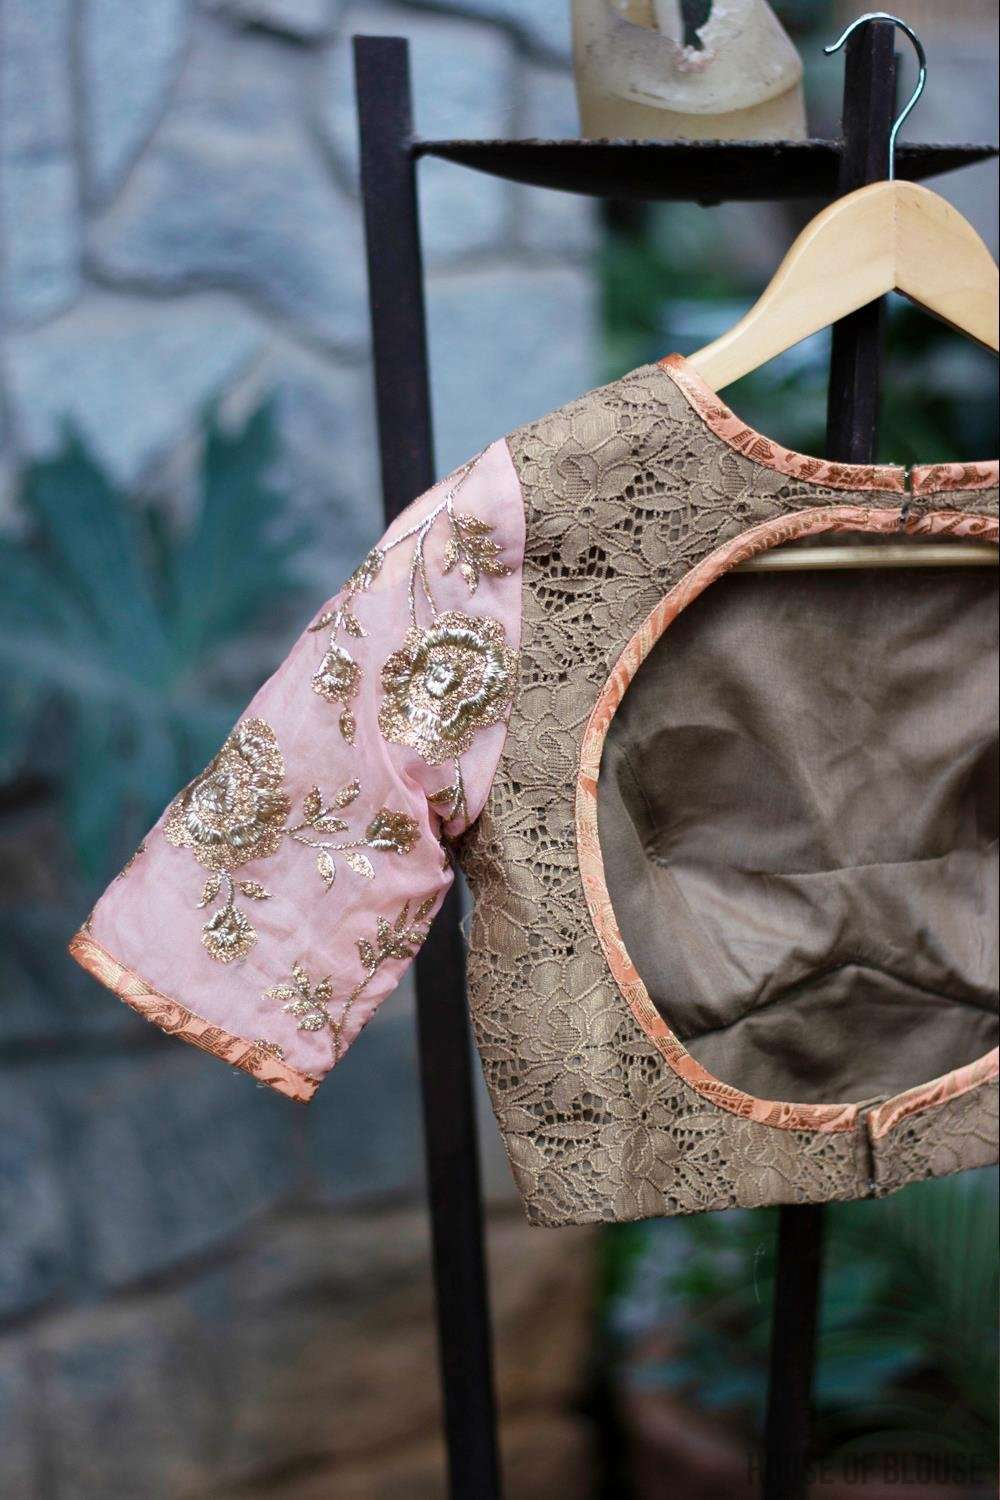 Patchwork blouse in gold lace, peach brocade, and embroidered organza. - House of Blouse